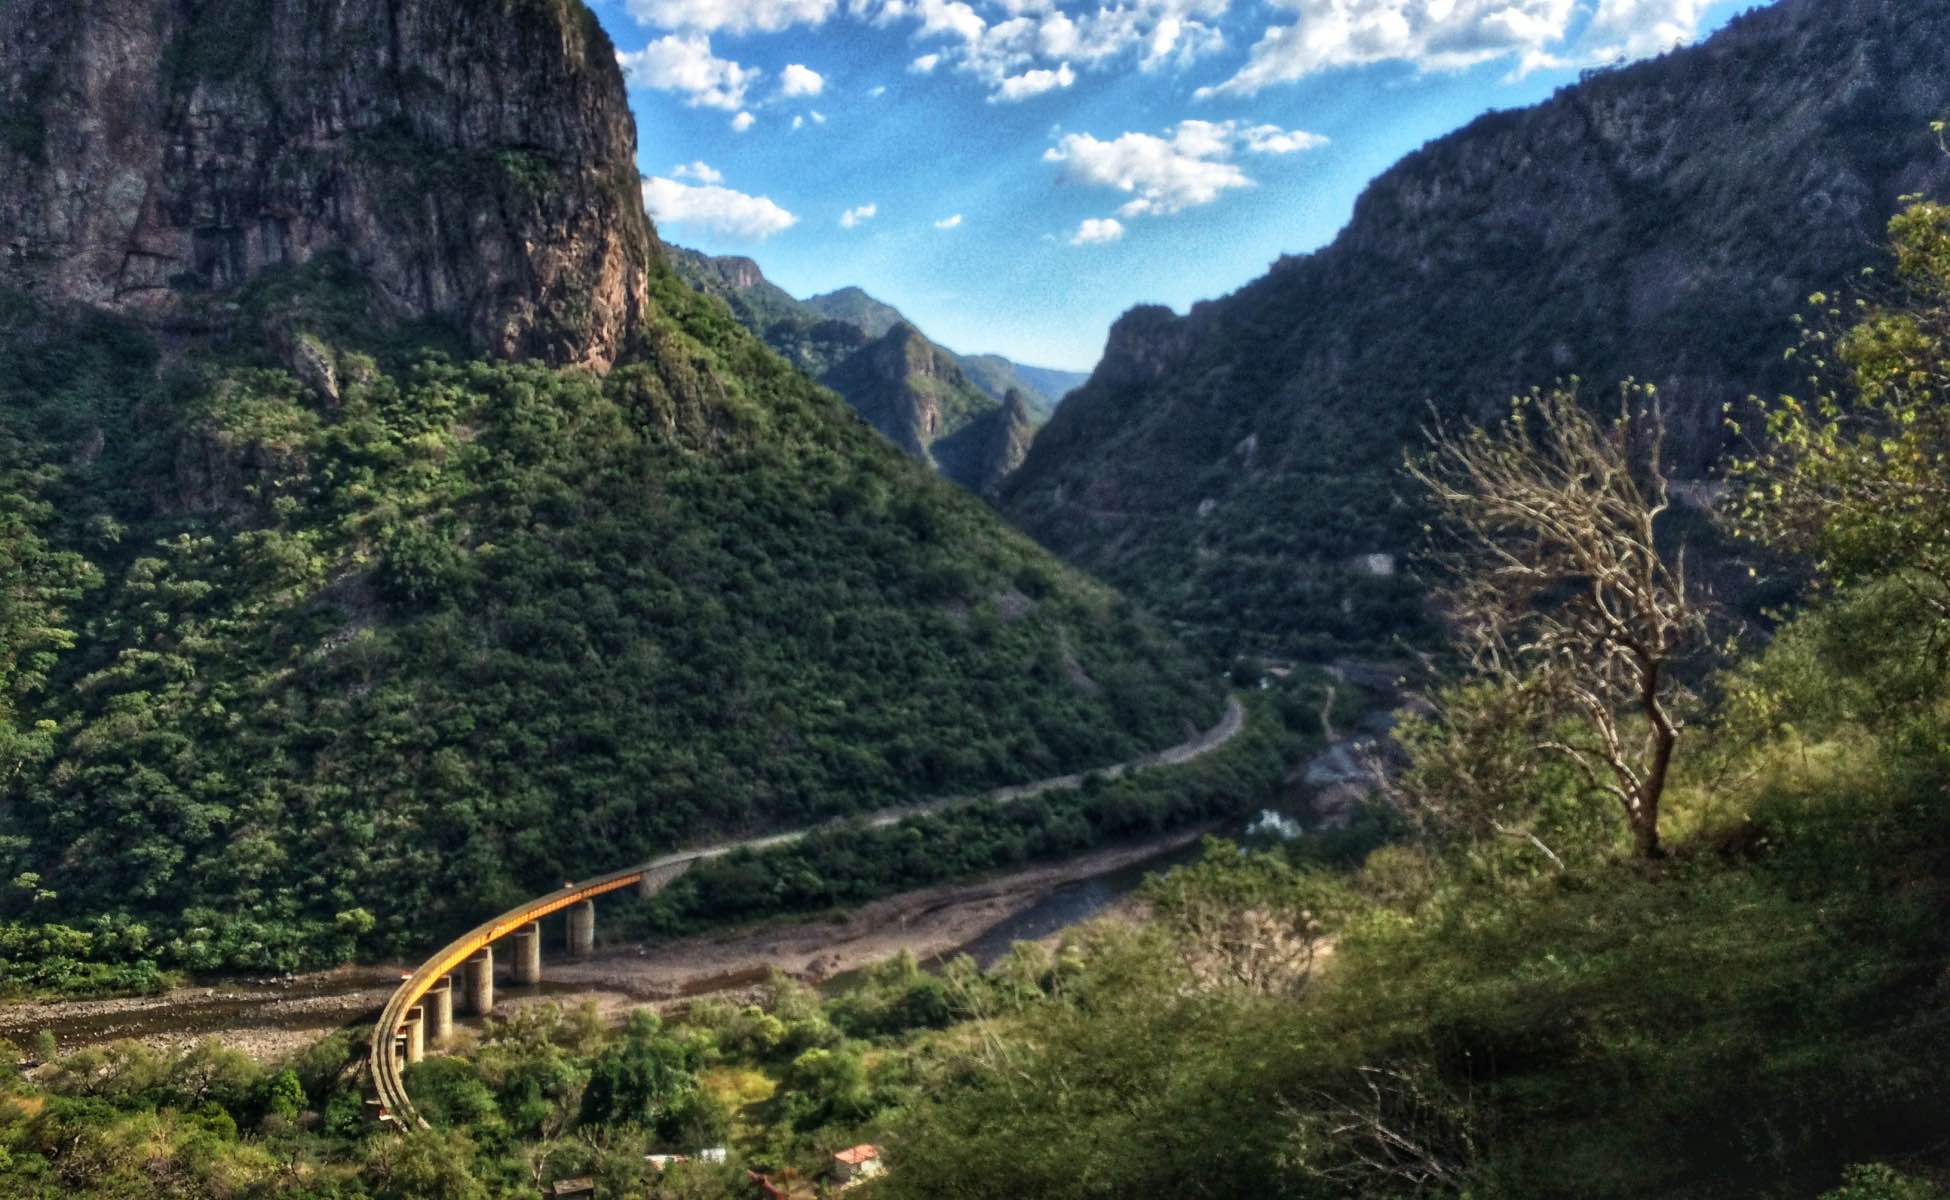 Mexico's Copper Canyon - Chepe railway tracks